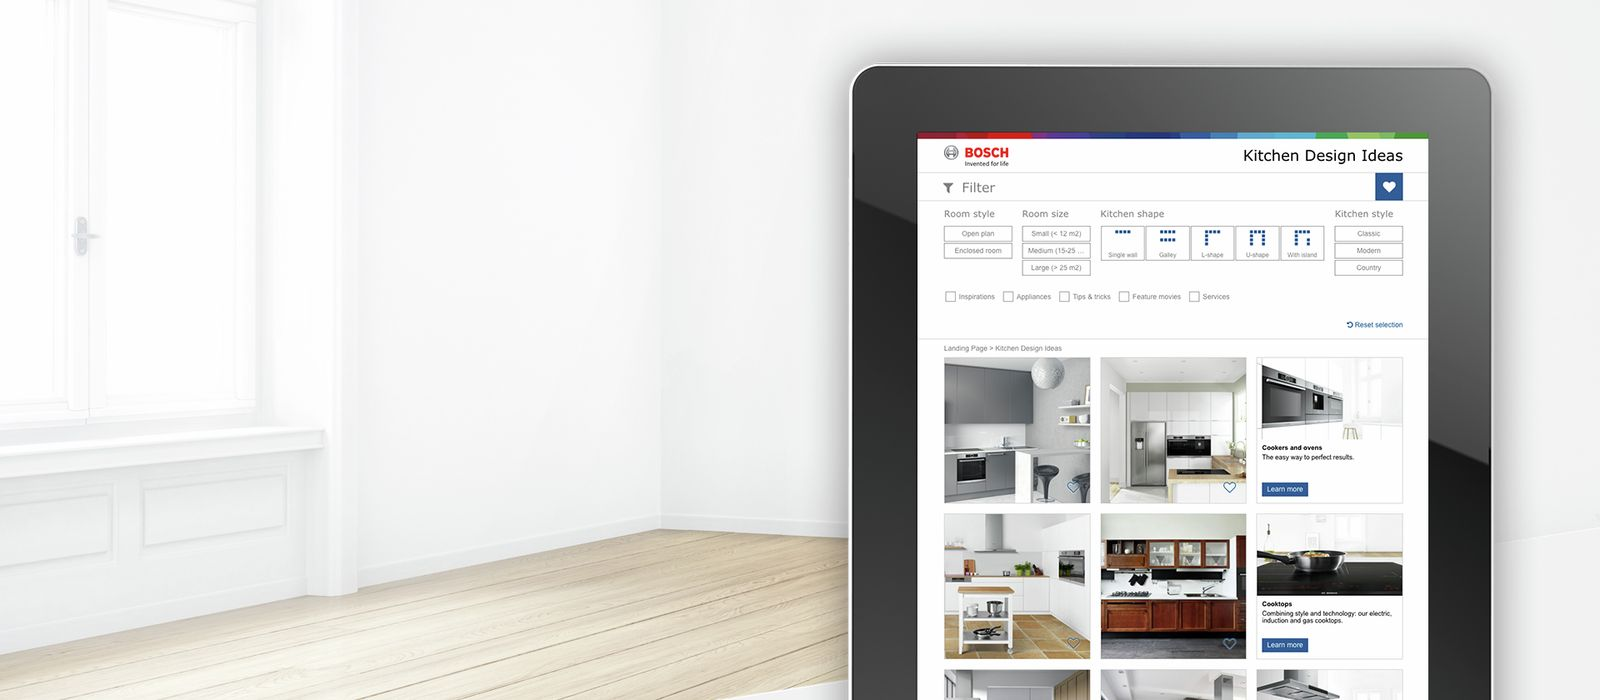 Bosch Kitchen Design Ideas - Planning, Ideas, Technologies - Bosch.